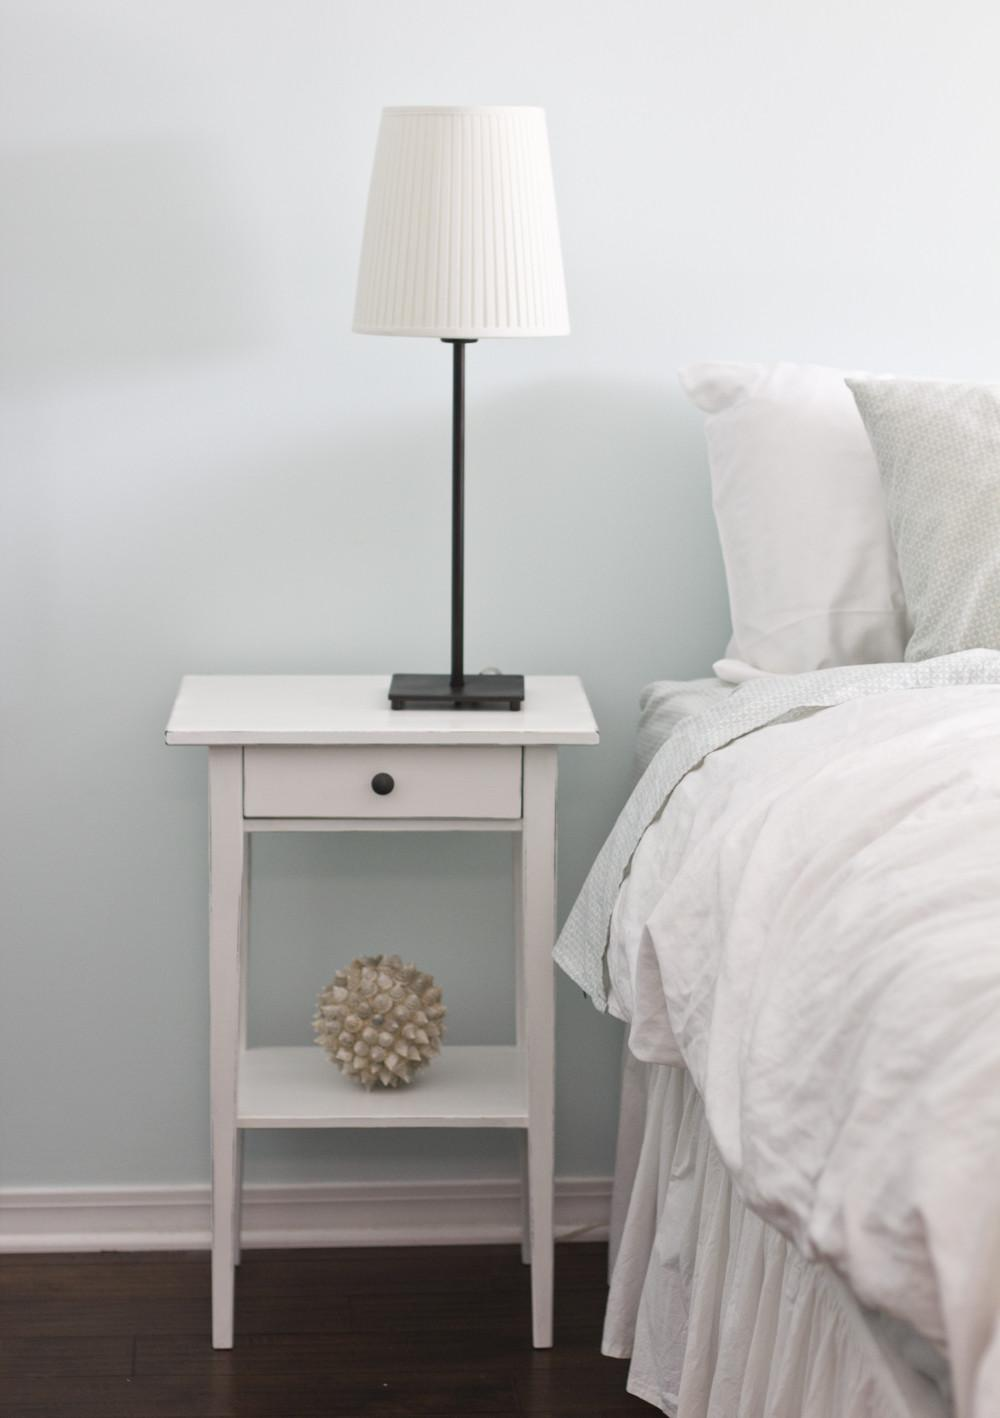 Hemnes Nightstand Hack Amazing Kitchen Decorating Ideas Decoratorist 169726